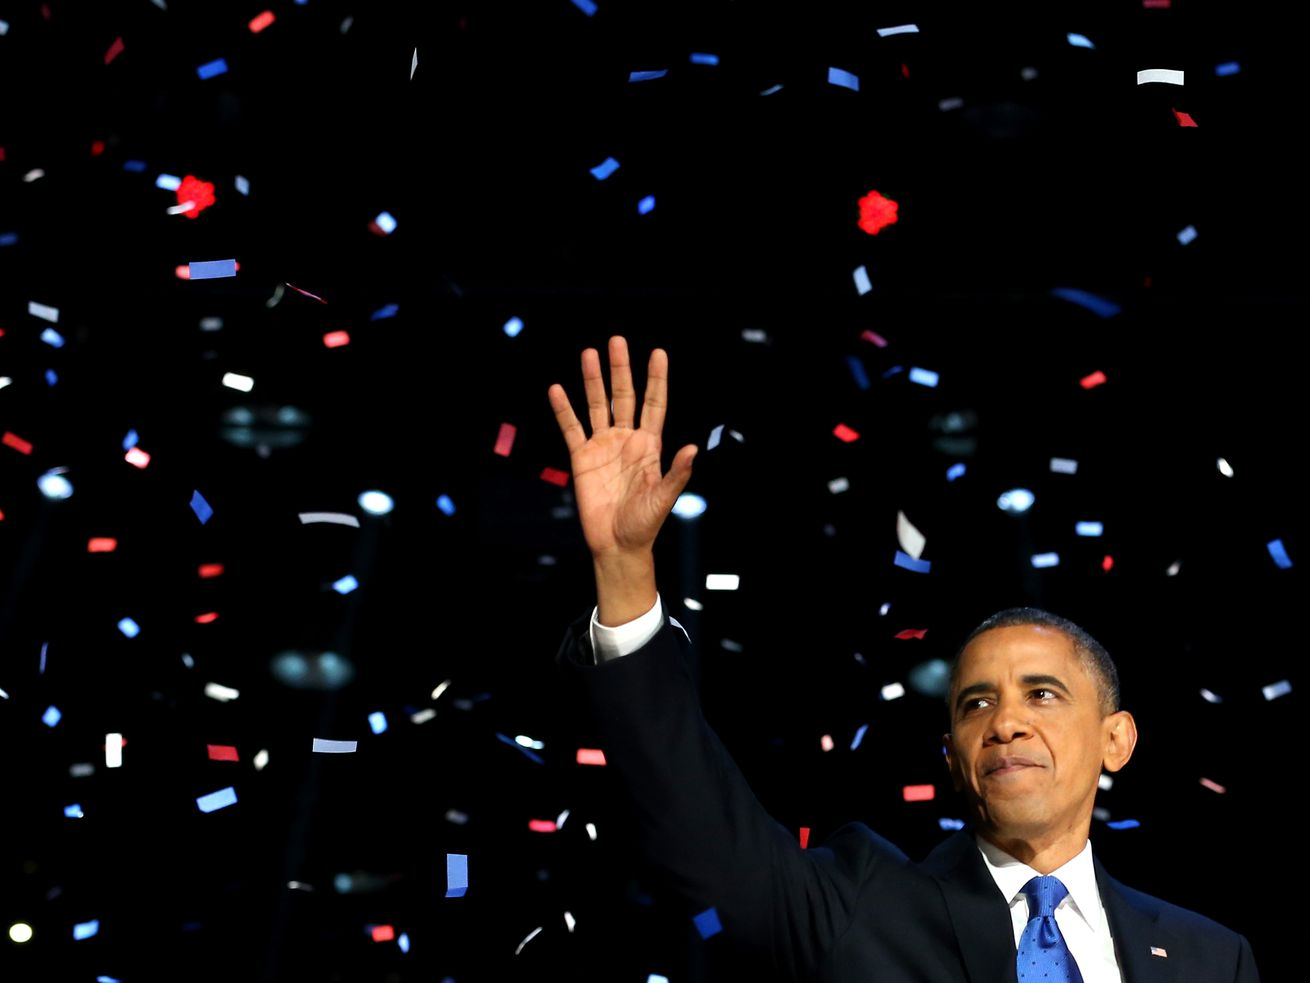 President Barack Obama waves to supporters after his victory speech at McCormick Place on election night November 6, 2012, in Chicago, Illinois.